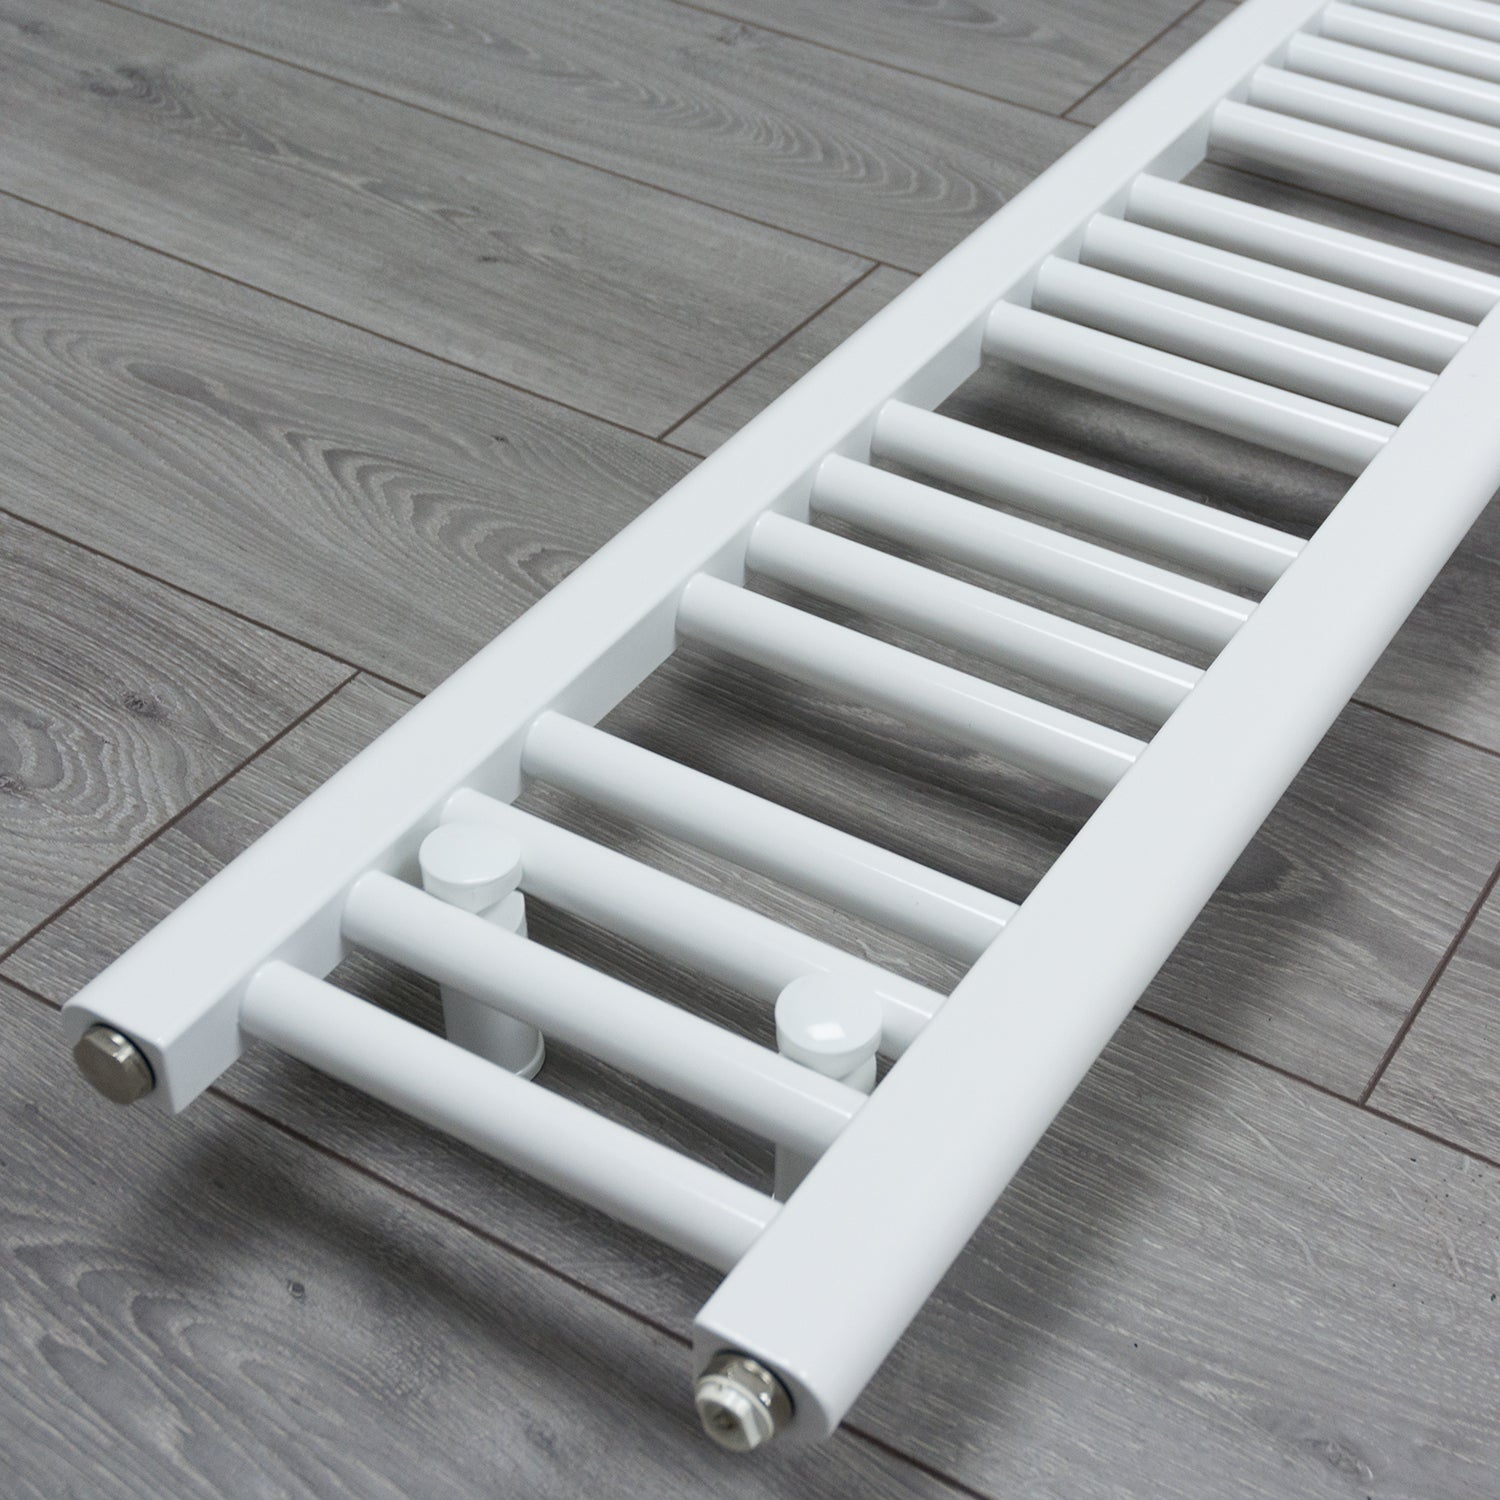 200mm x 1400mm White Heated Towel Rail Radiator Close Up Image